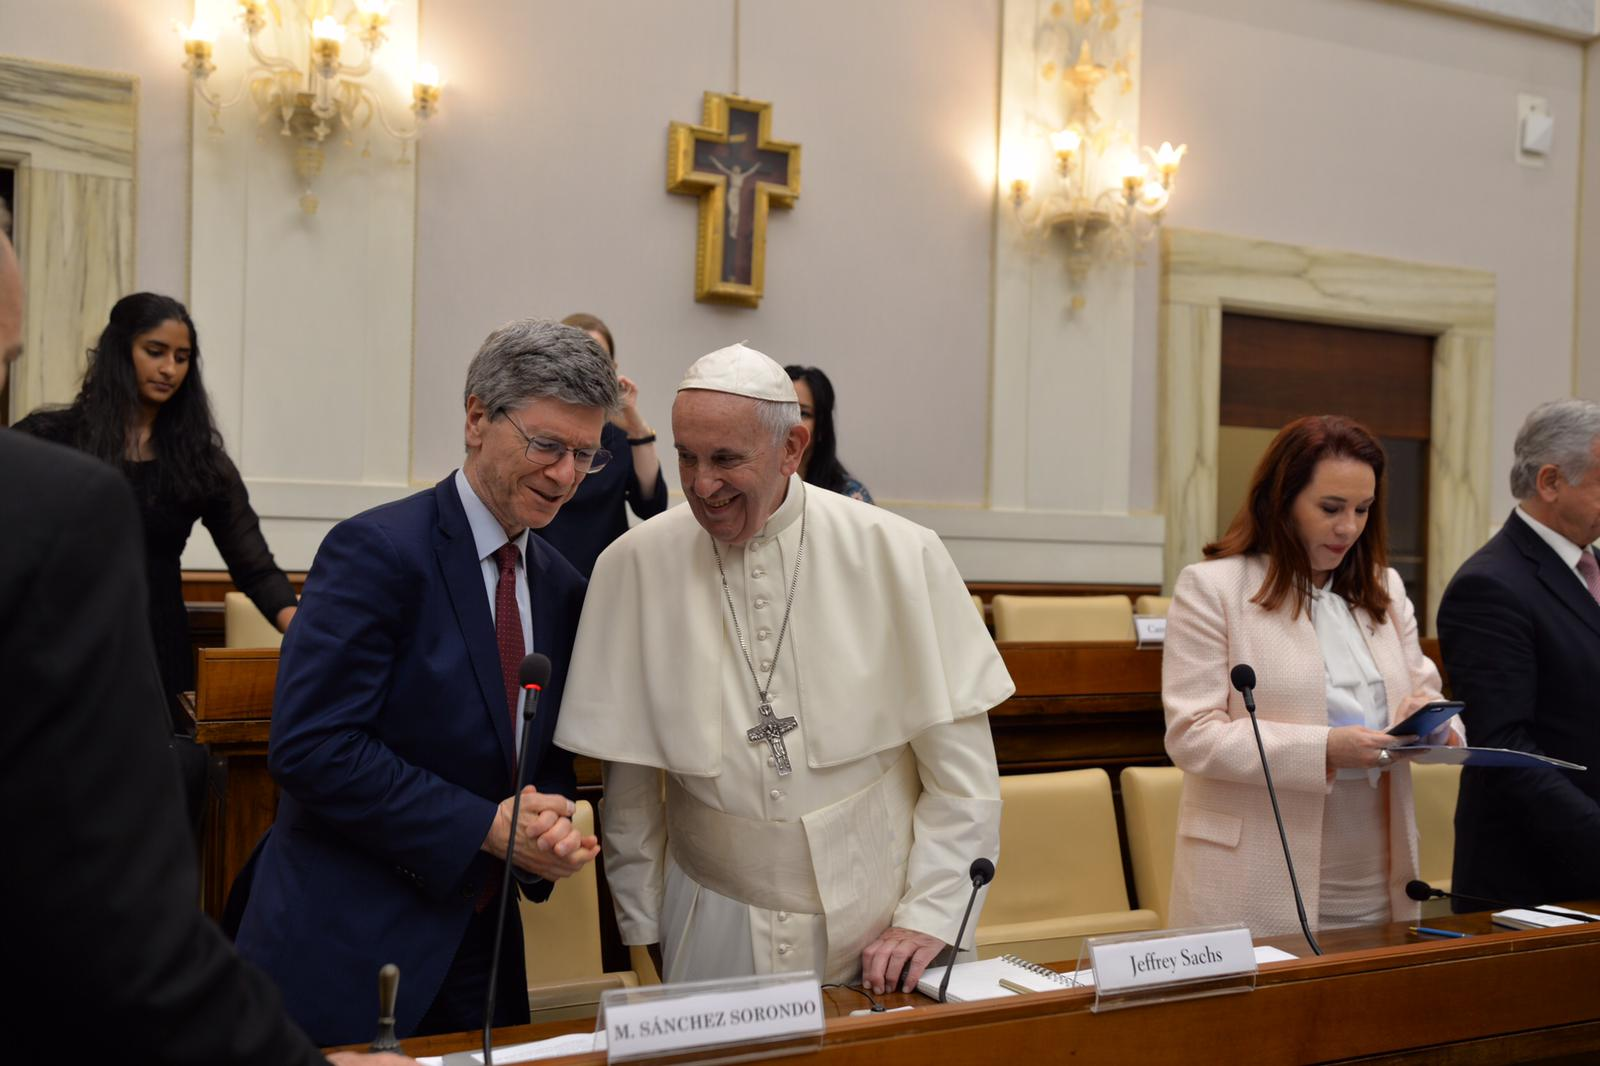 Jeff Sachs (left) and Pope Francis (center) and PGA (right) at the Vatican to discuss SDGs.